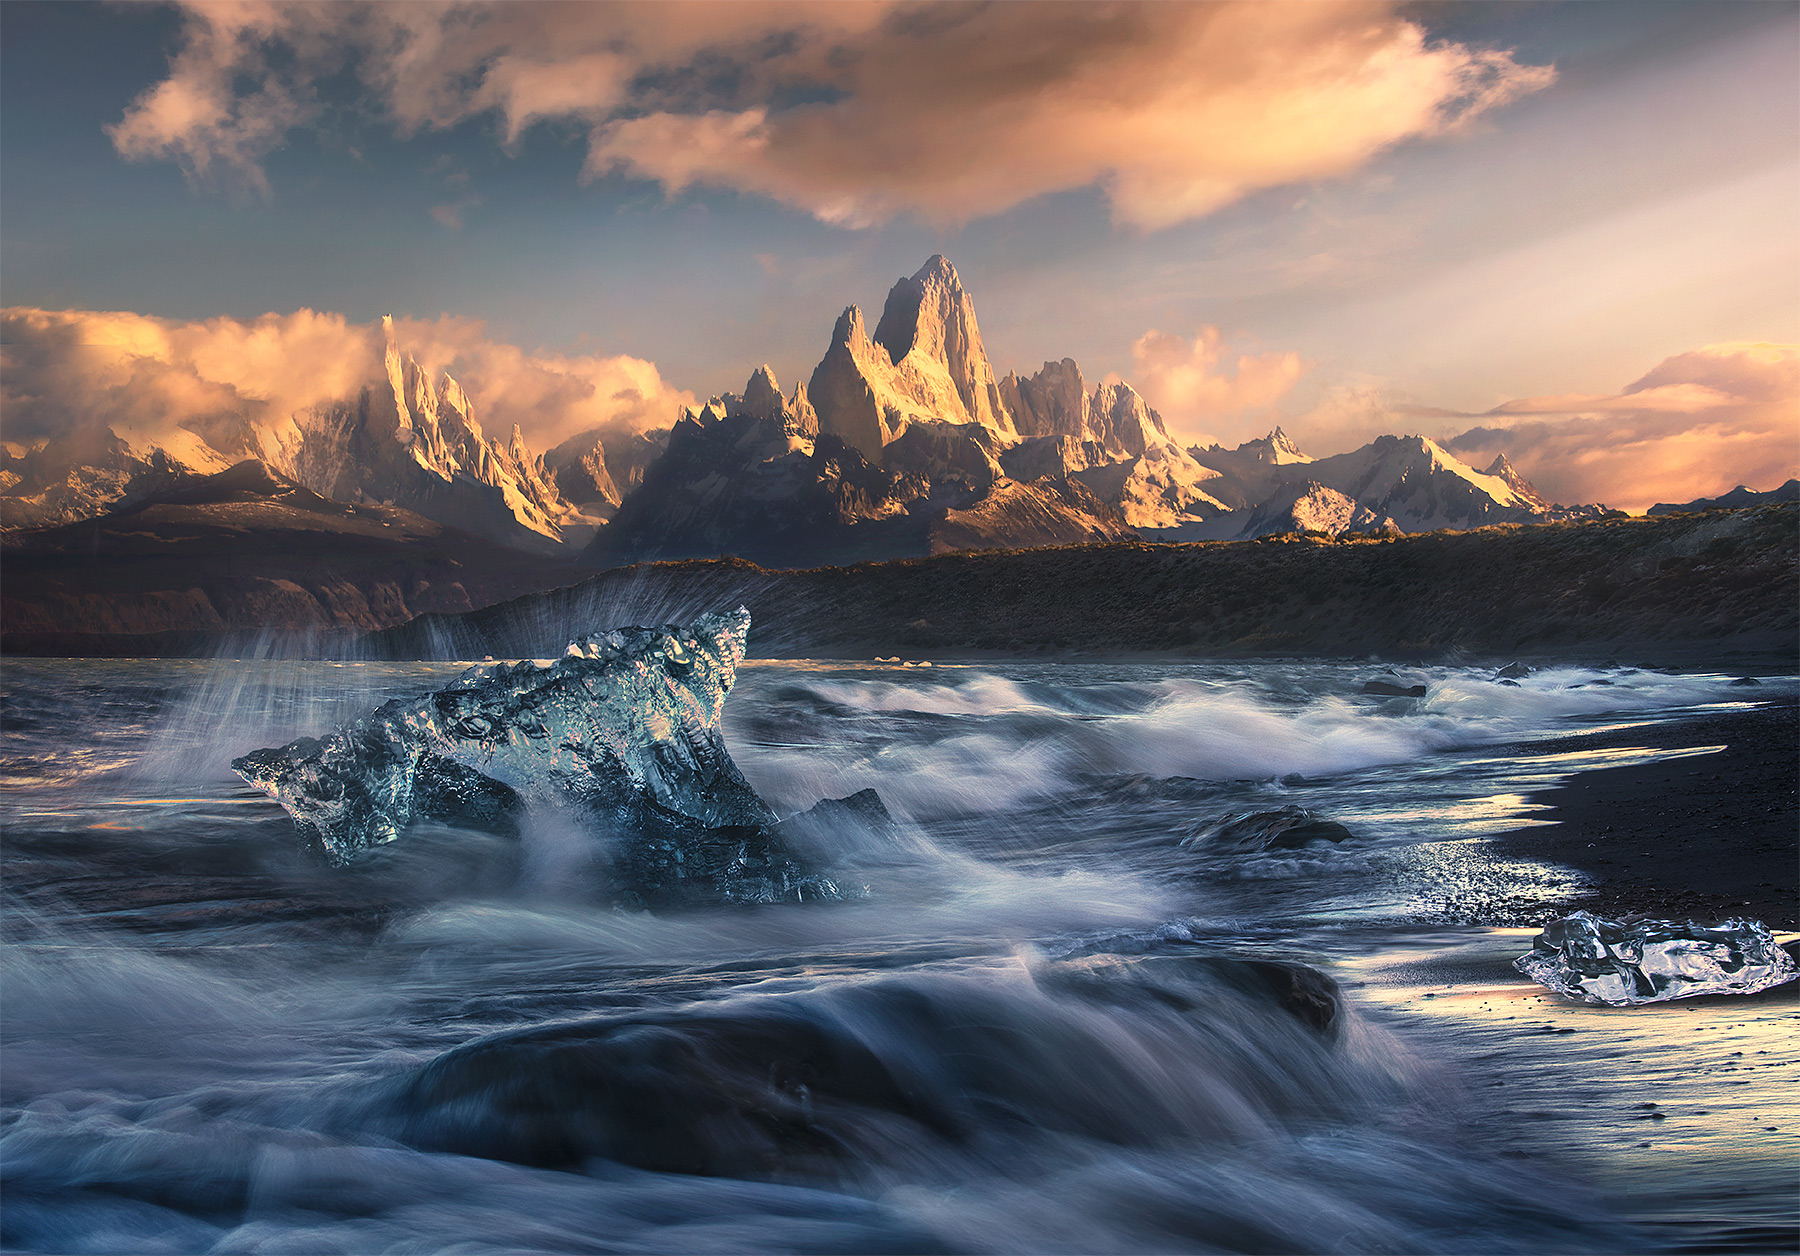 A unique view of Fitz Roy and Cerro Torre from a distant lakeshore catching some big wave action and a few icebergs one beautiful...